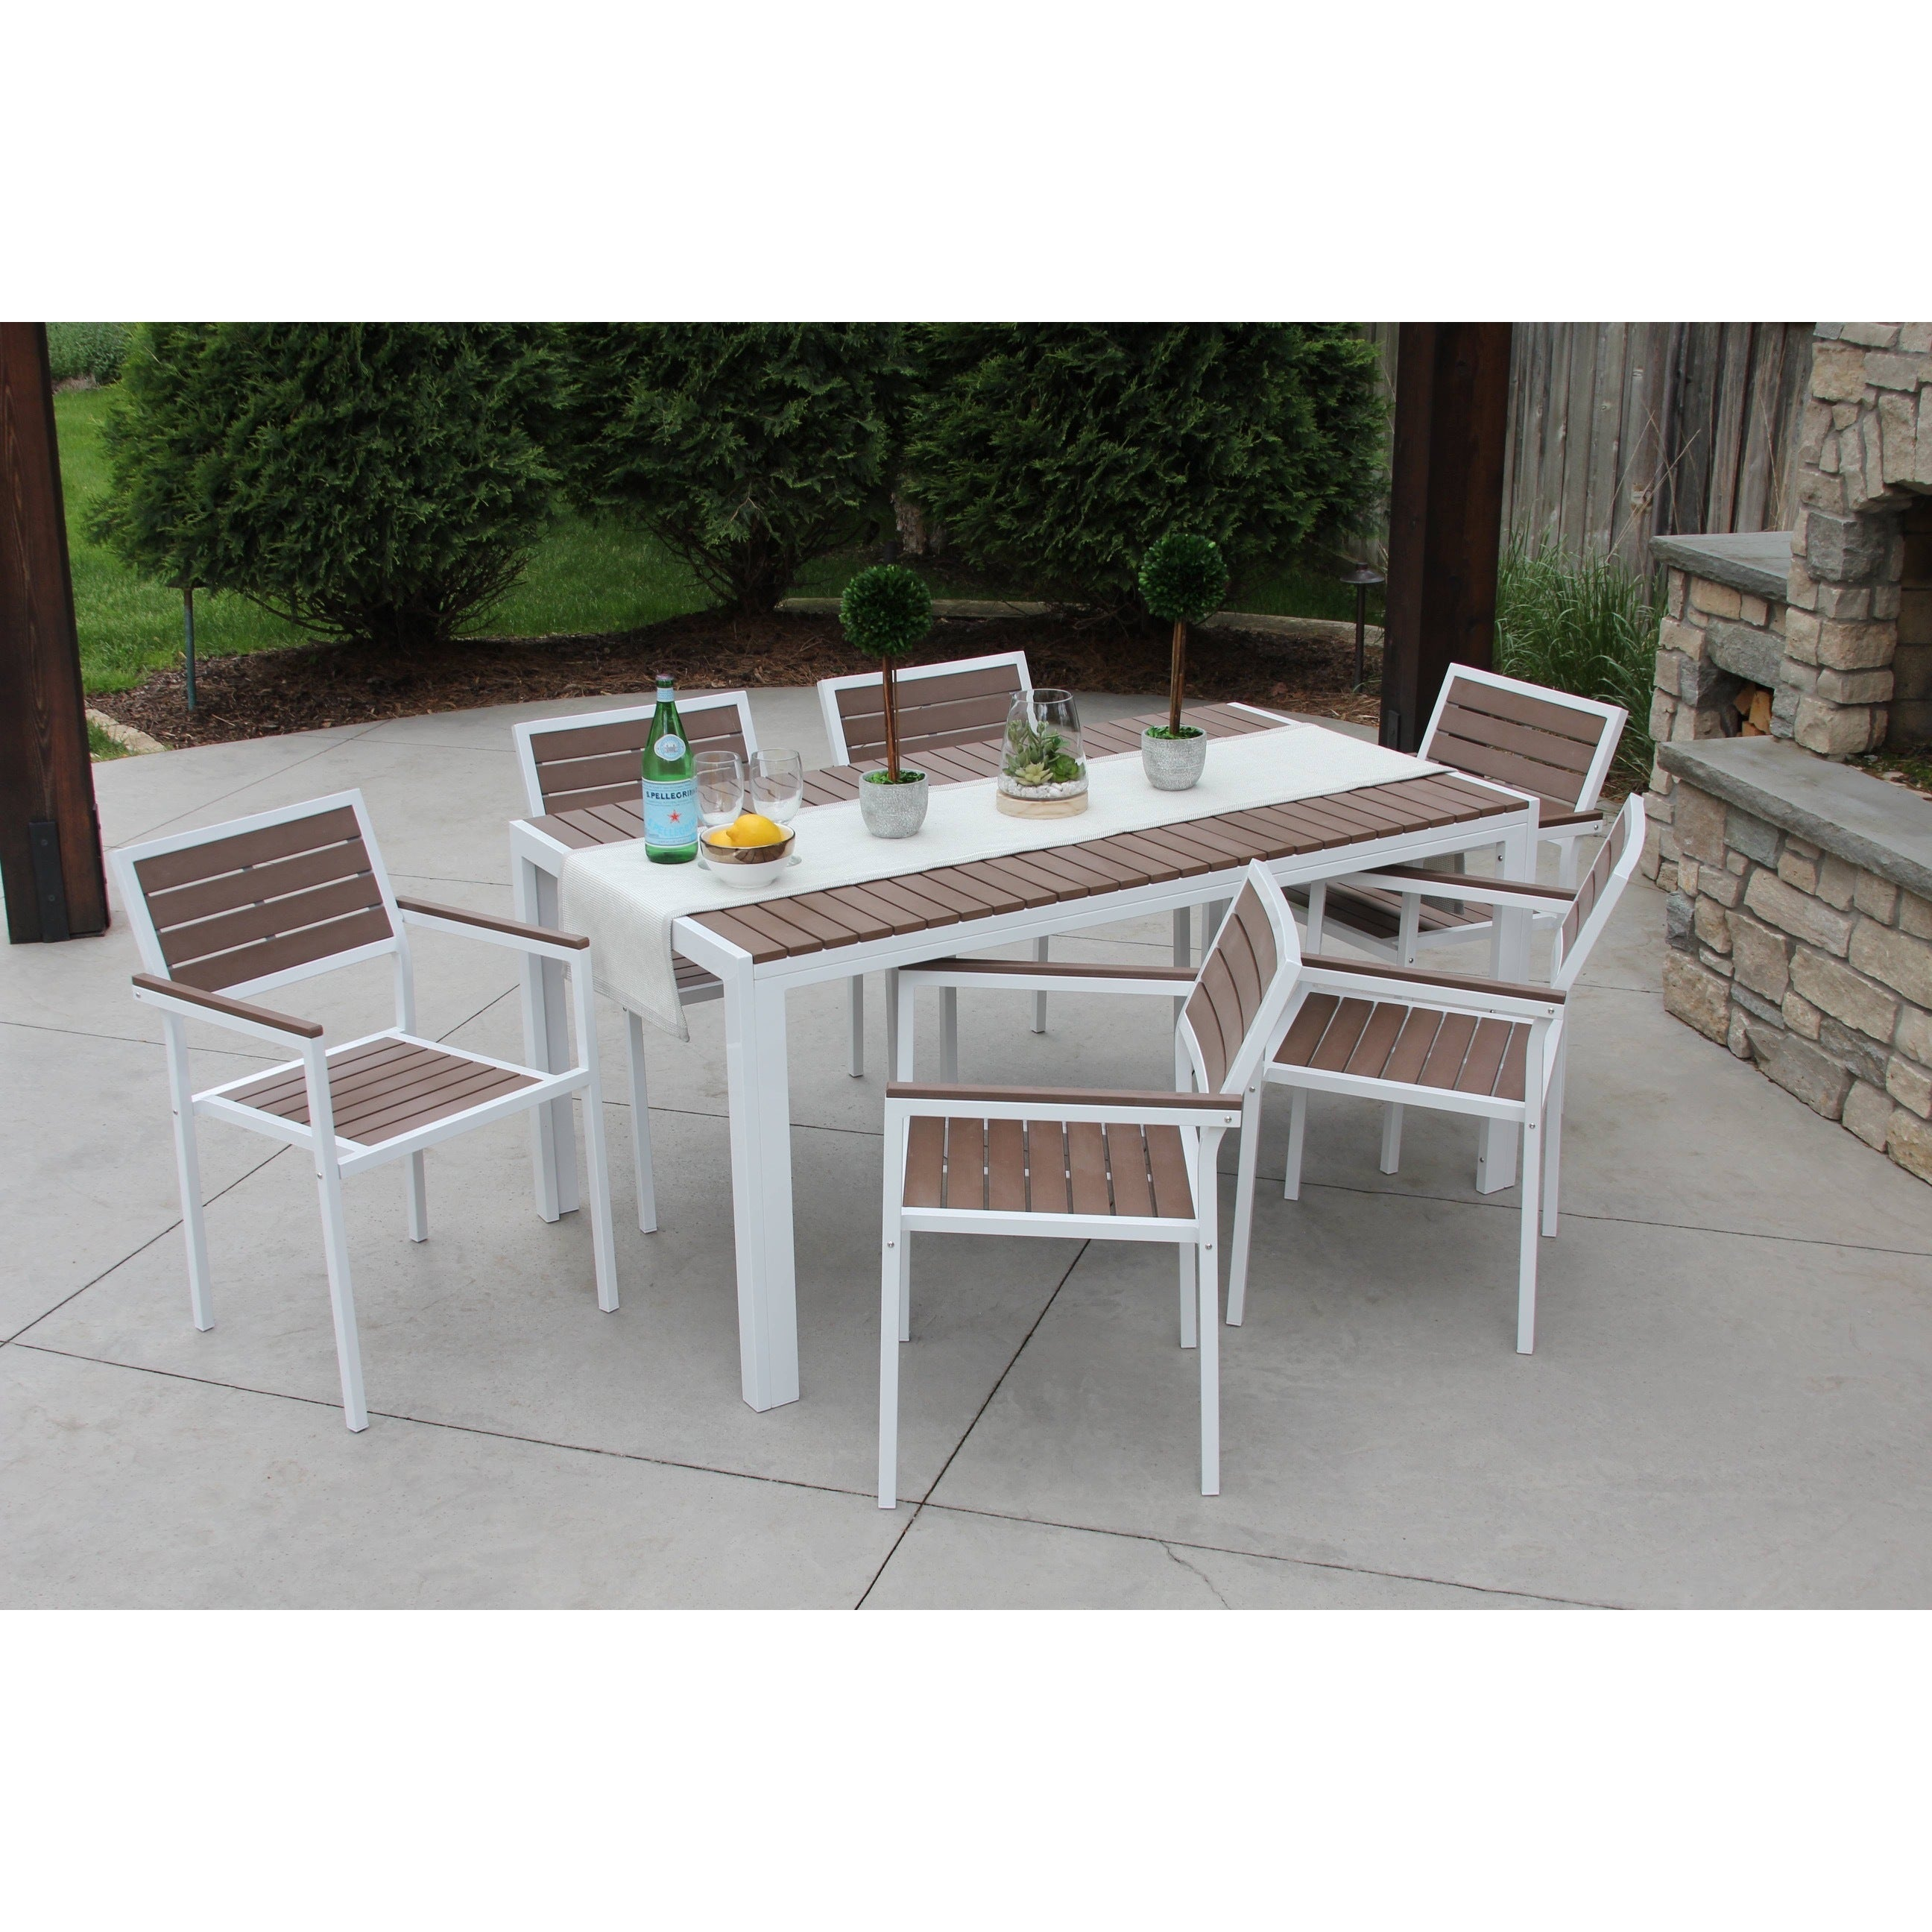 7 Piece All Weather Outdoor Patio Furniture Garden Deck Dining Set